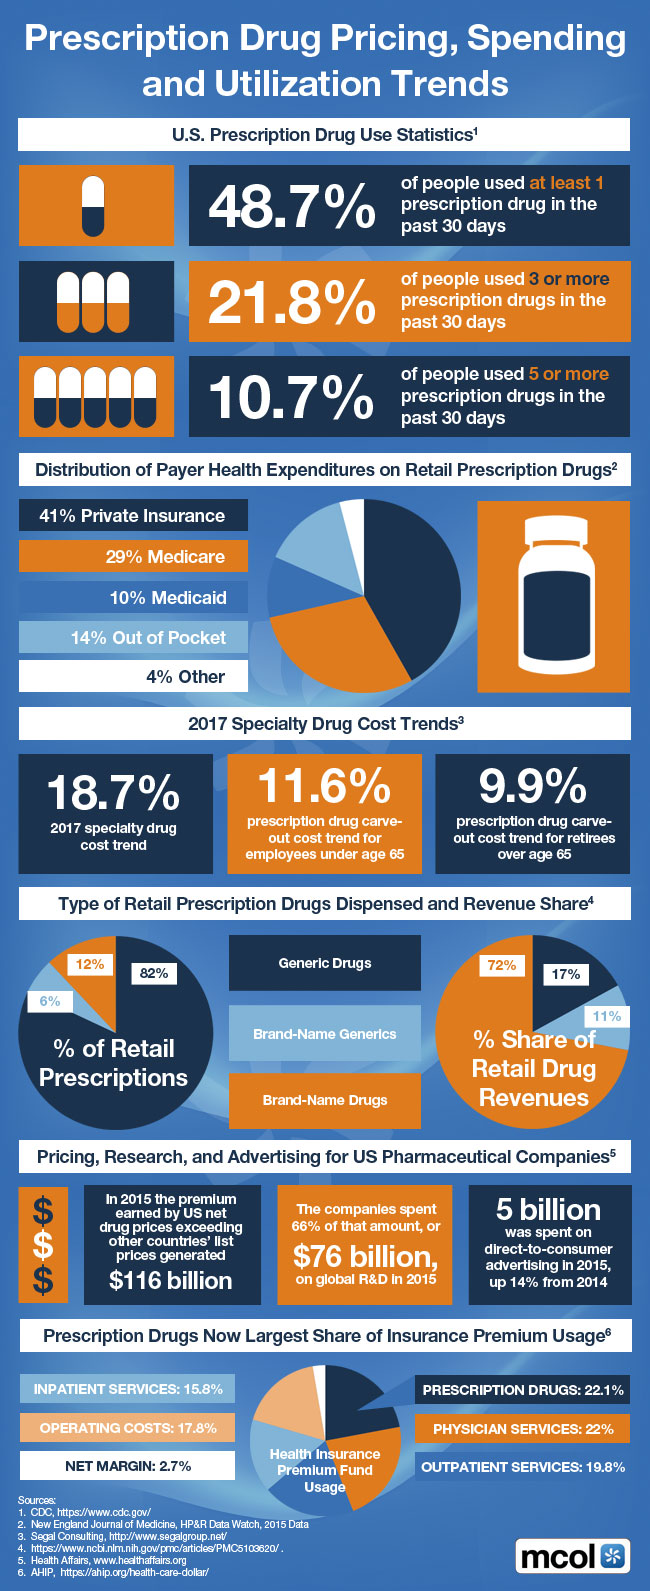 This Infographic is available at http://www.mcareol.com/images/infographic0317.jpg